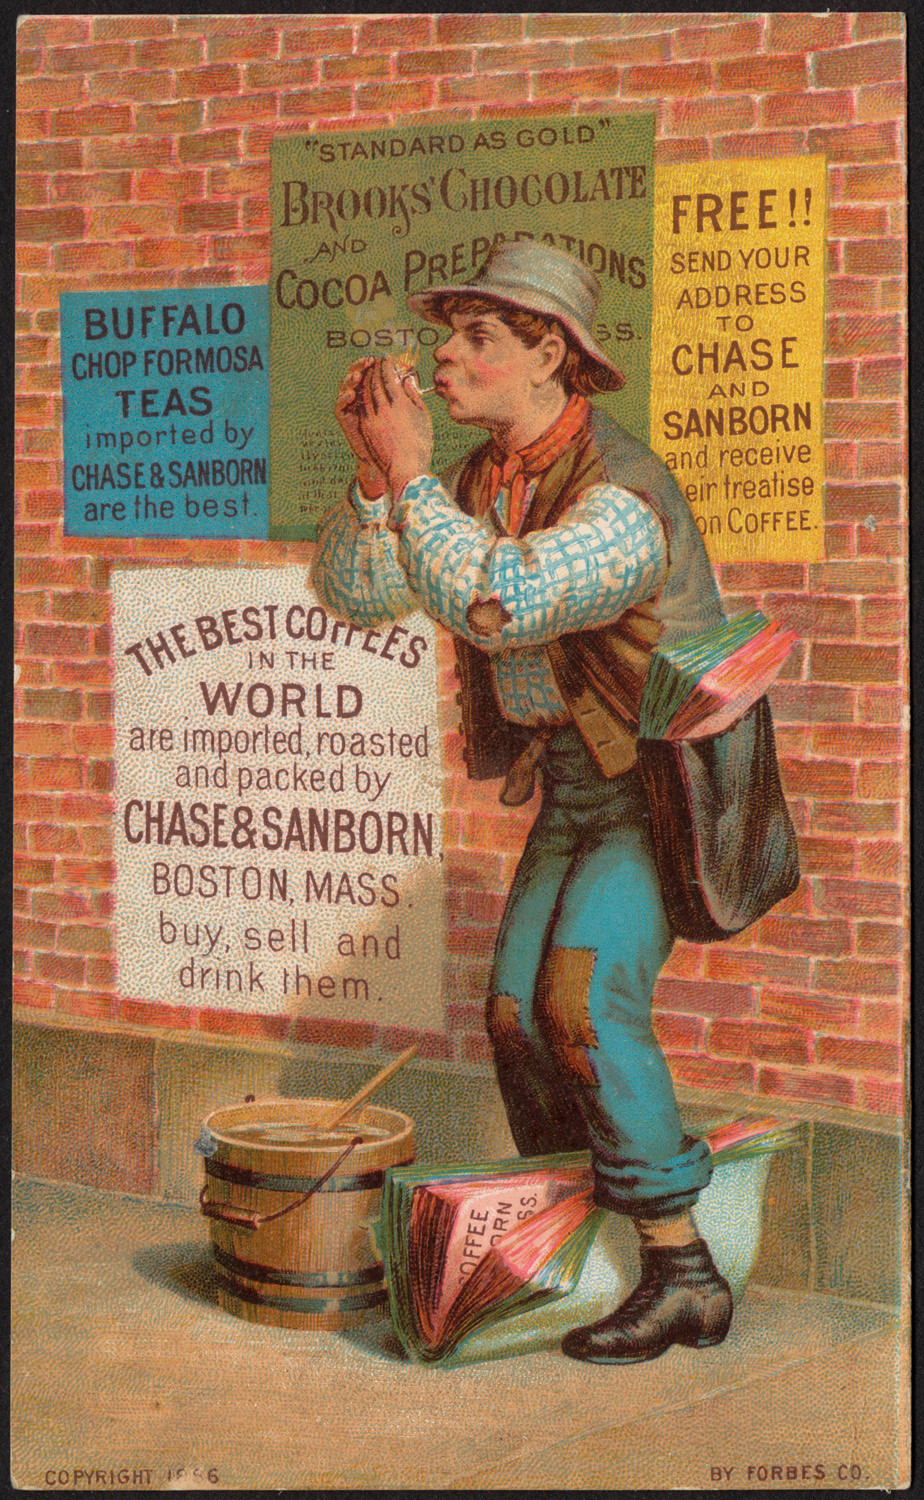 Brooks' Chocolate, 1886, Boston Public Library